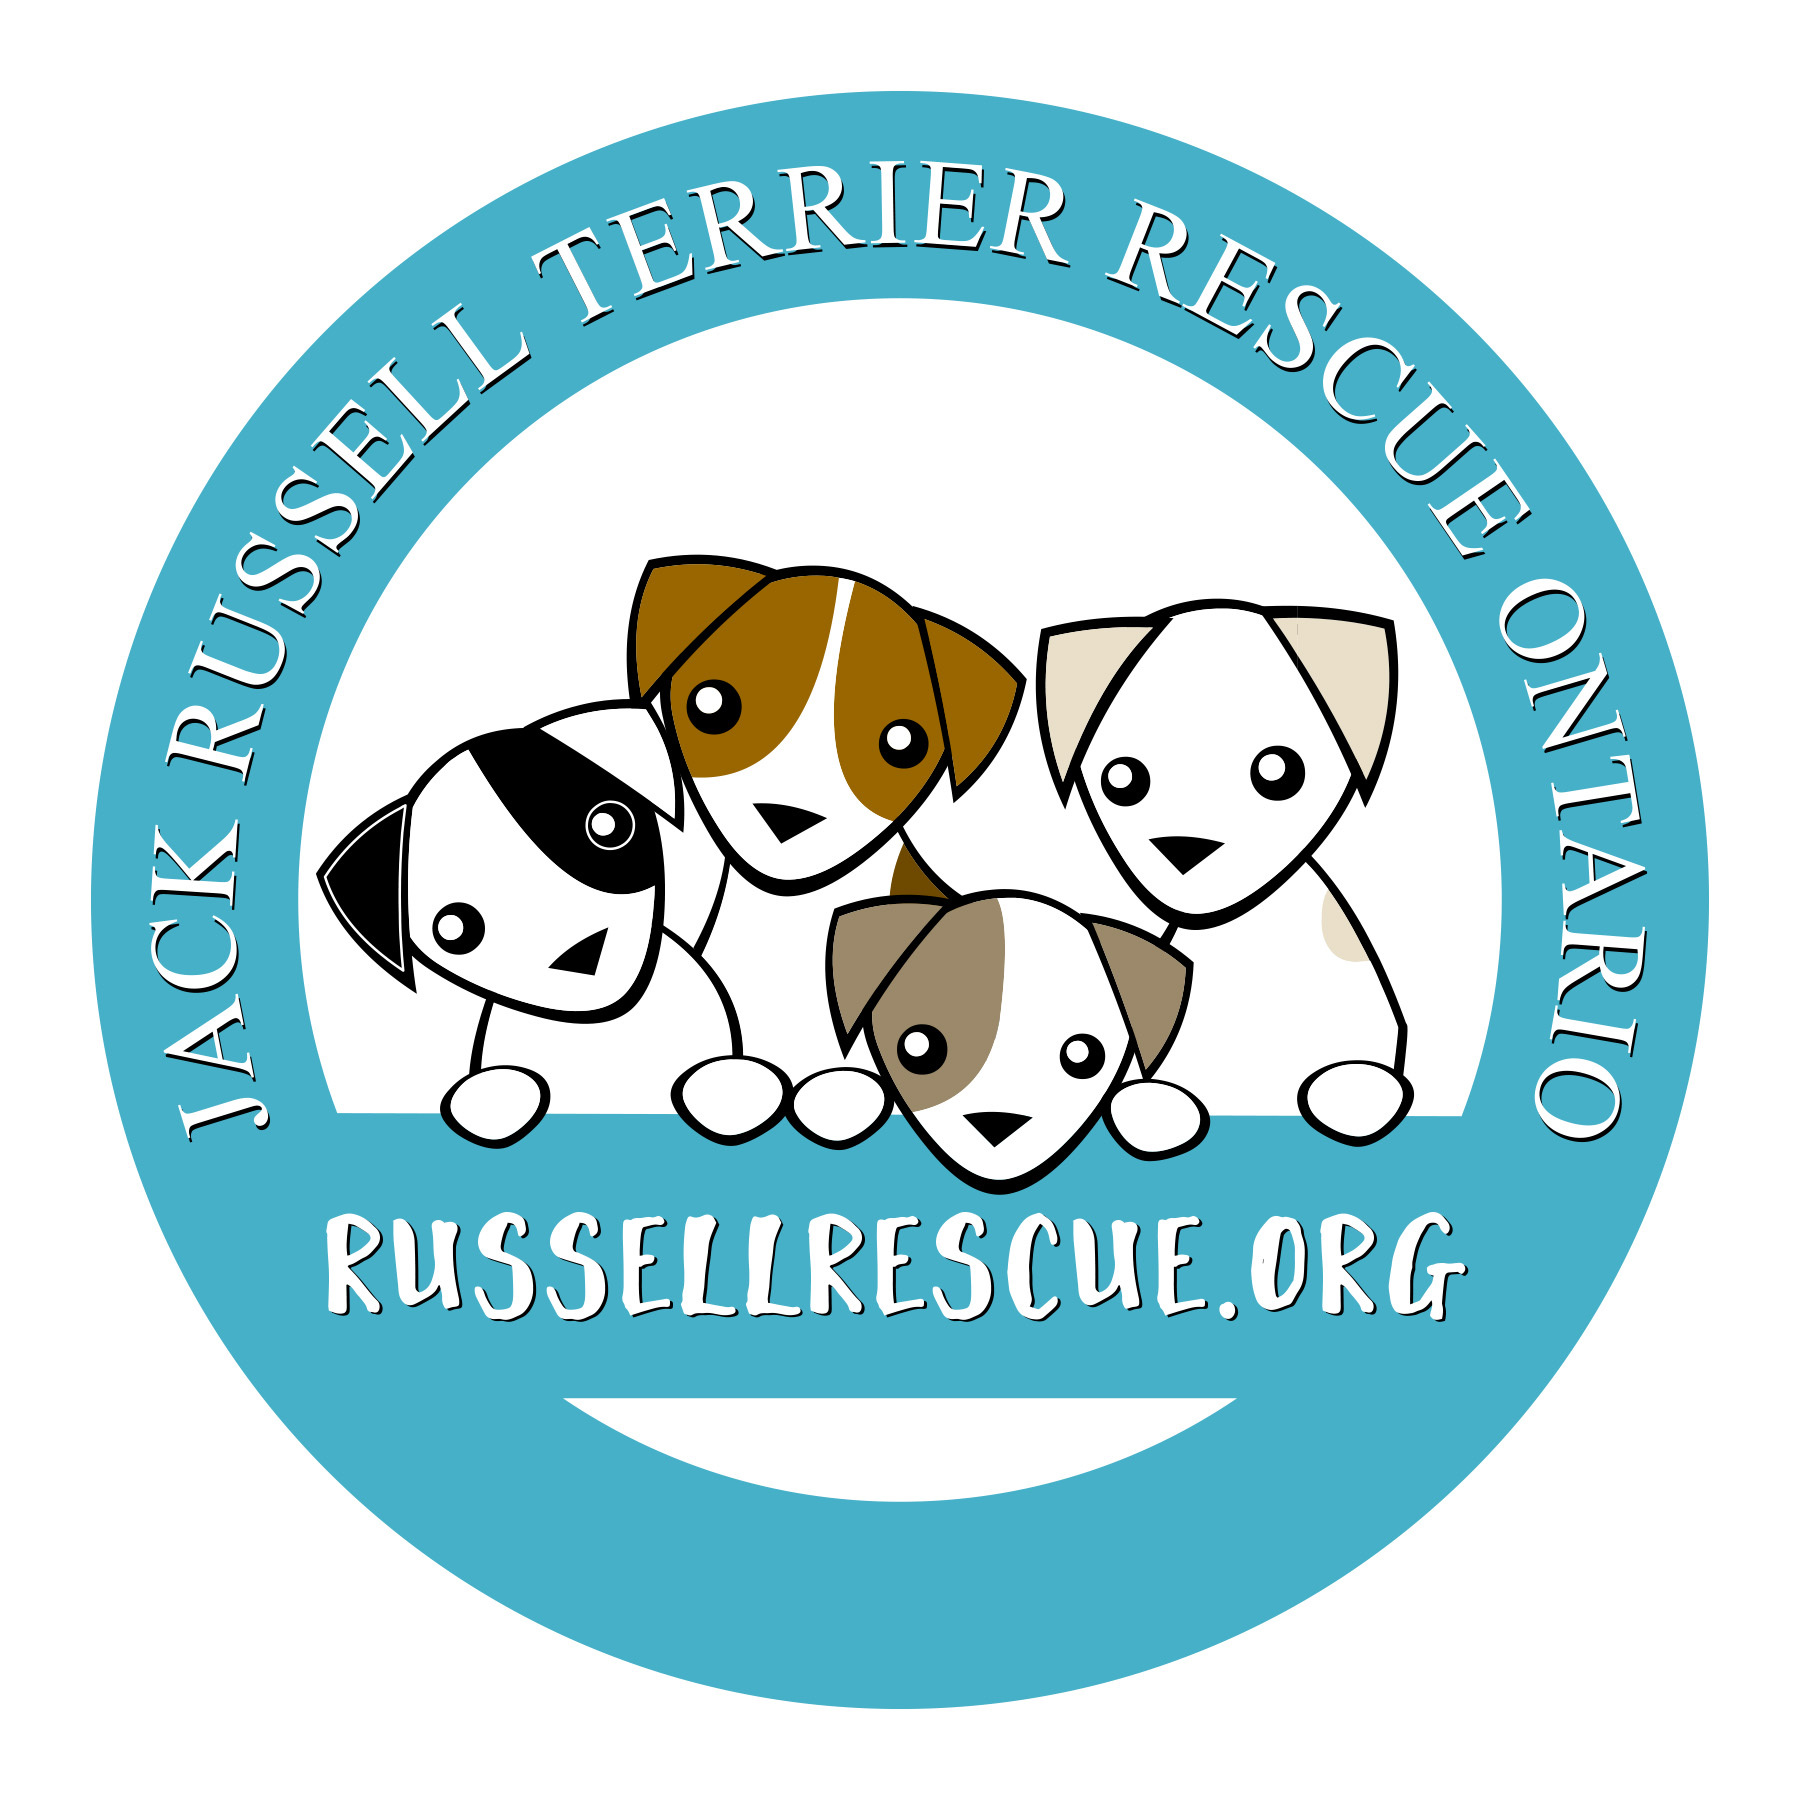 Jack Russell Terrier Rescue Ontario (JRTRO)